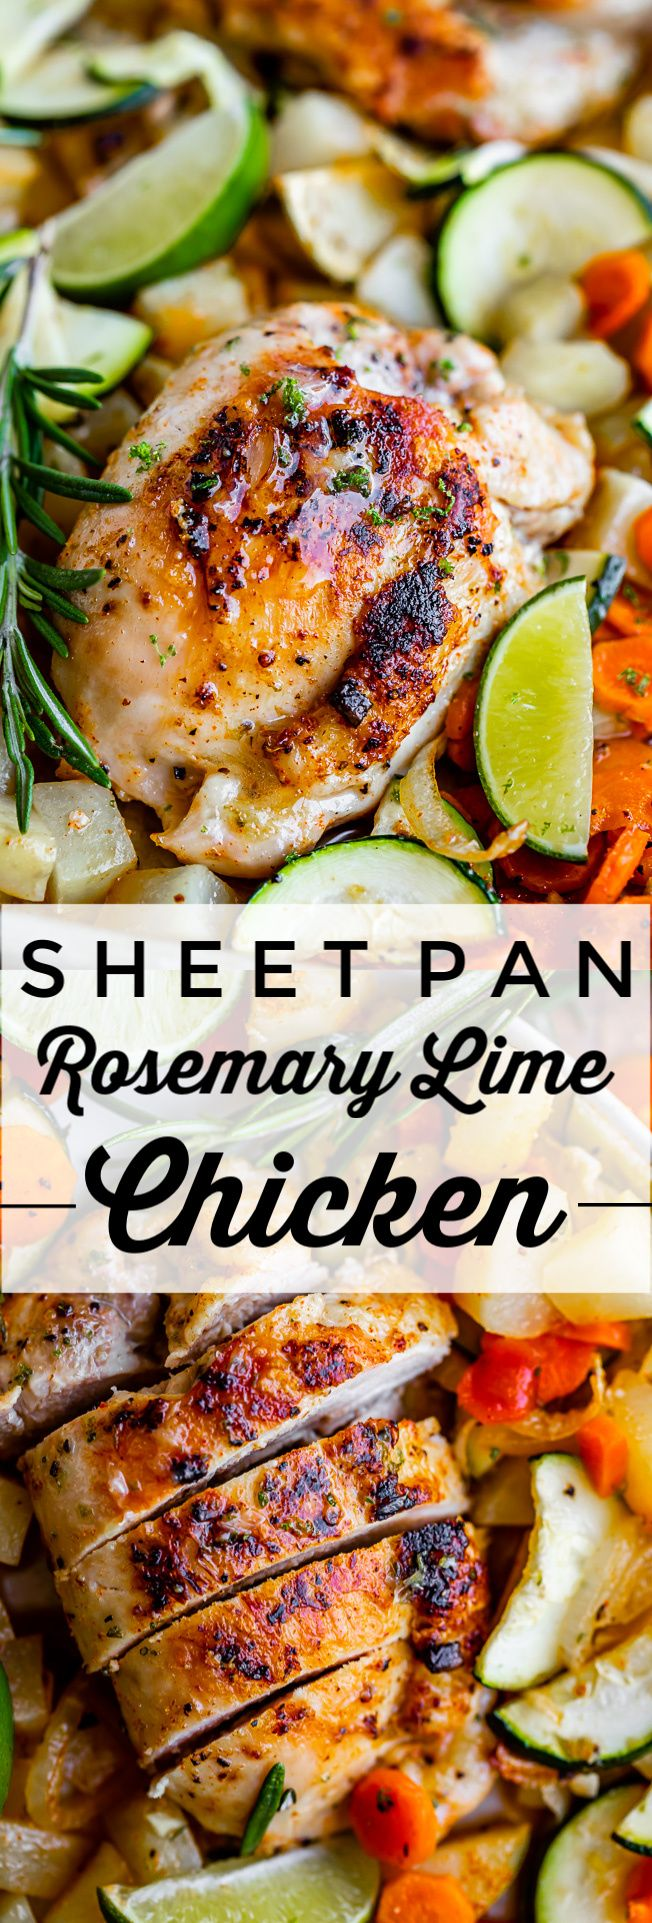 Sheet Pan Rosemary Lime Chicken and Veggies from The Food Charlatan. This is the…